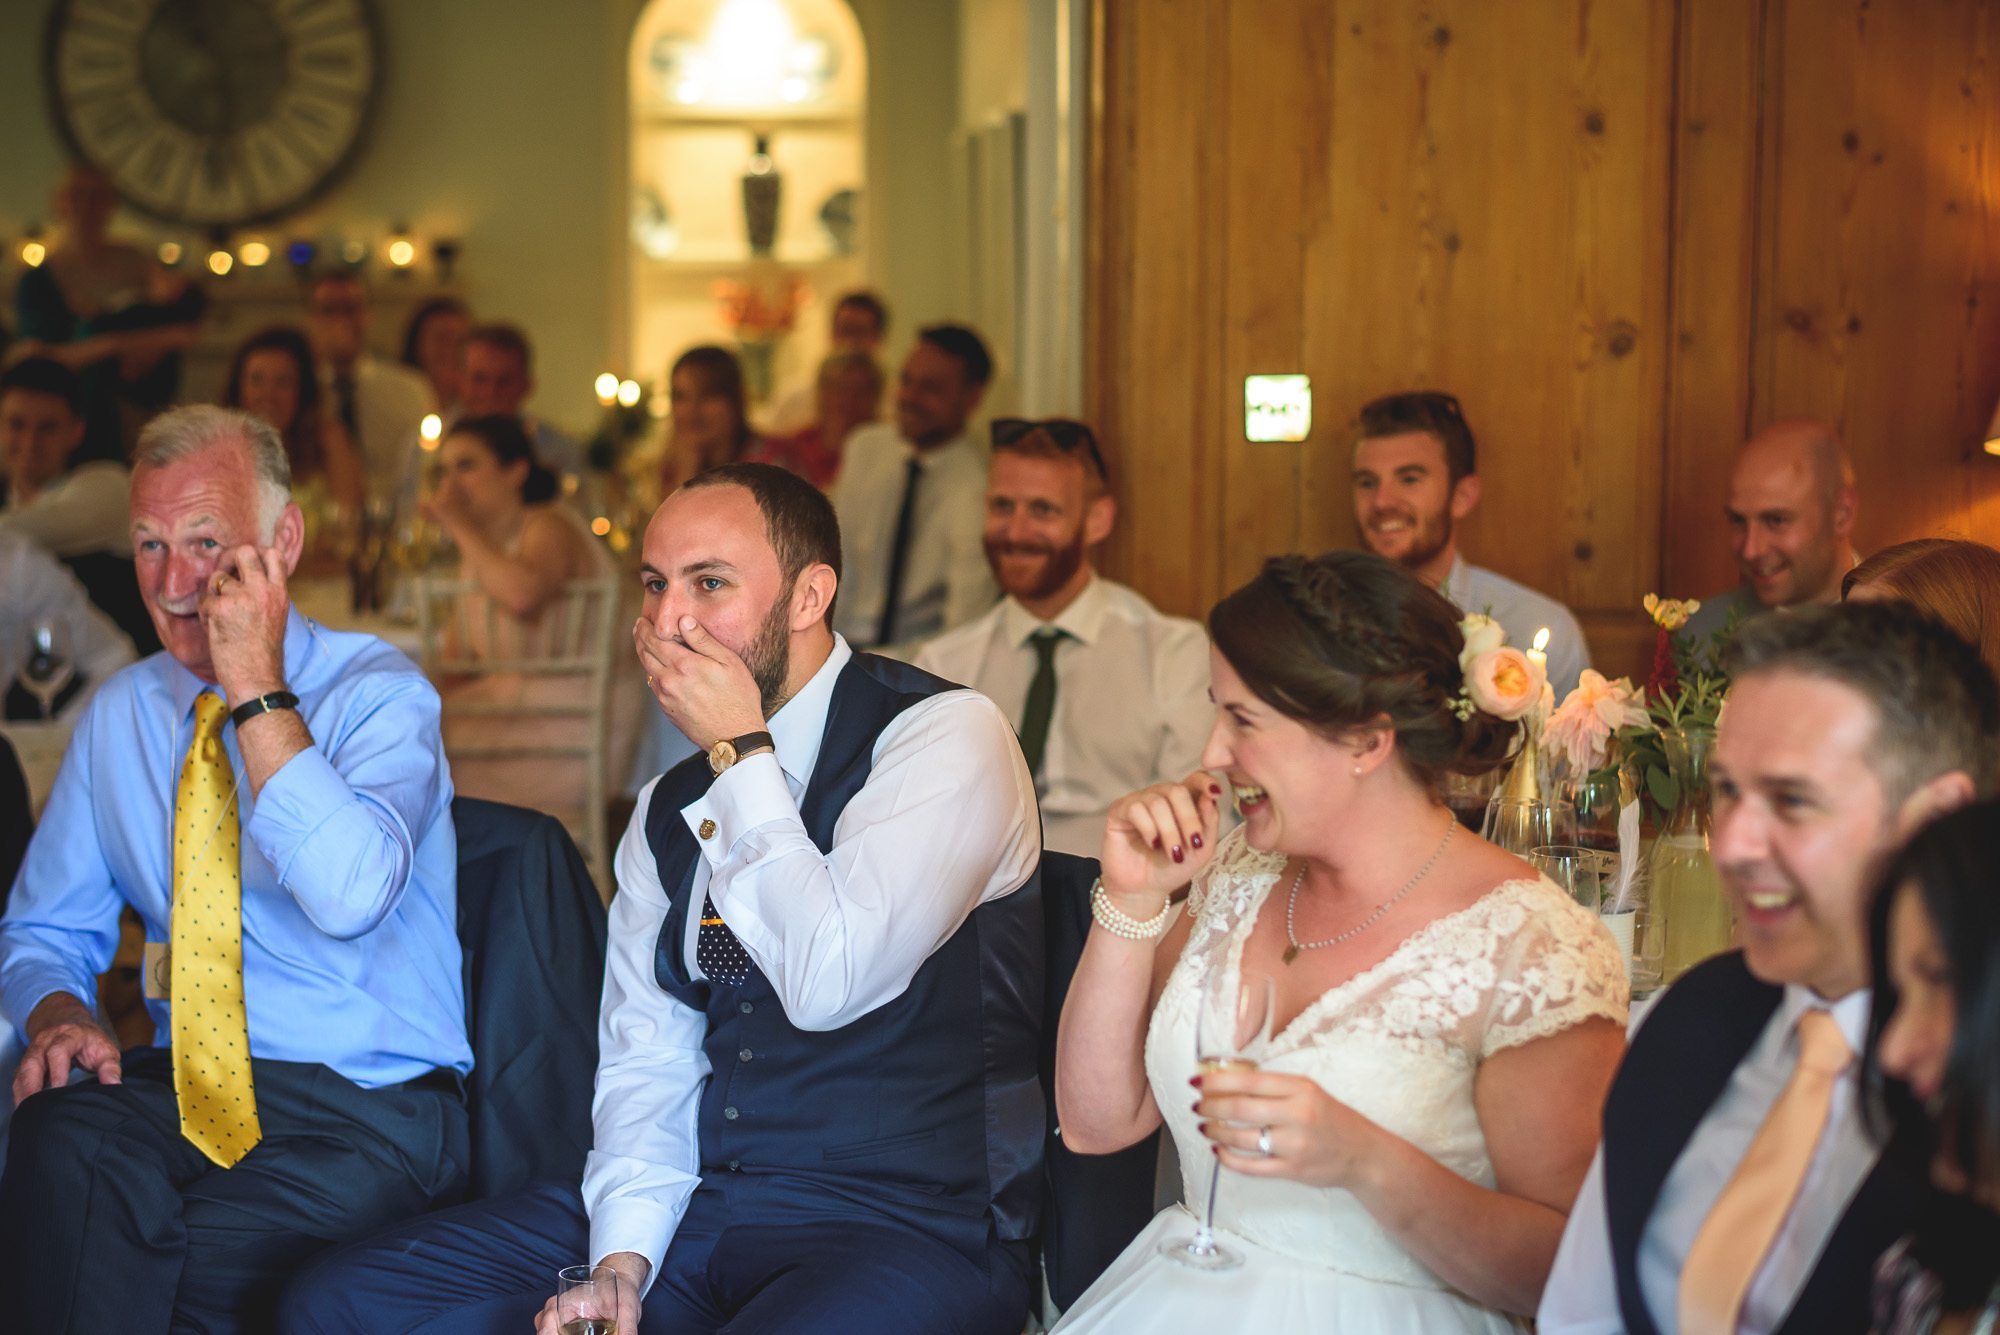 Jem and Andy - - The Rectory at Crudwell wedding photography (144 of 195)